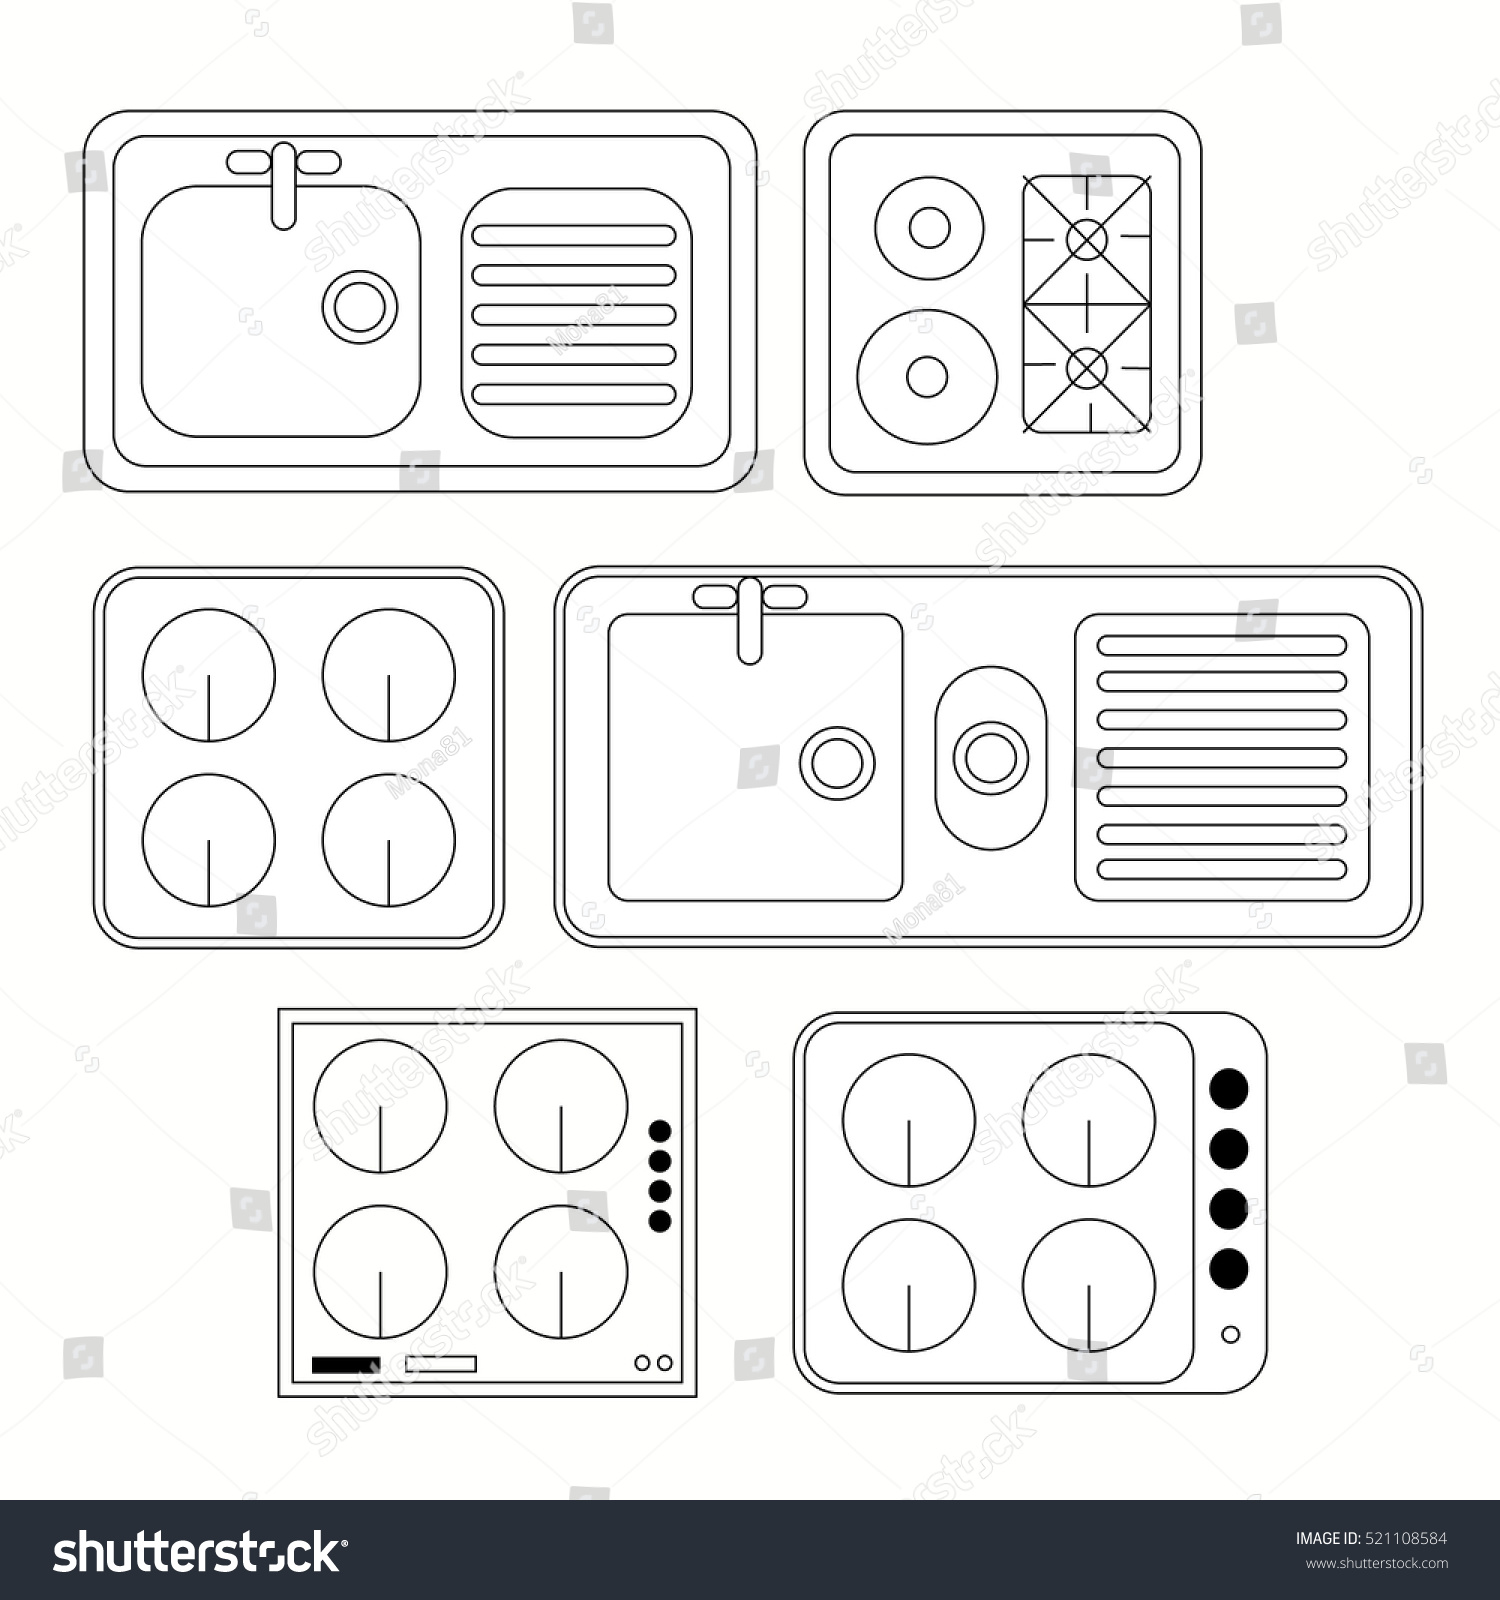 Top View Kitchen Elements Furniture Symbols Stock Vector 521108584 Shutterstock